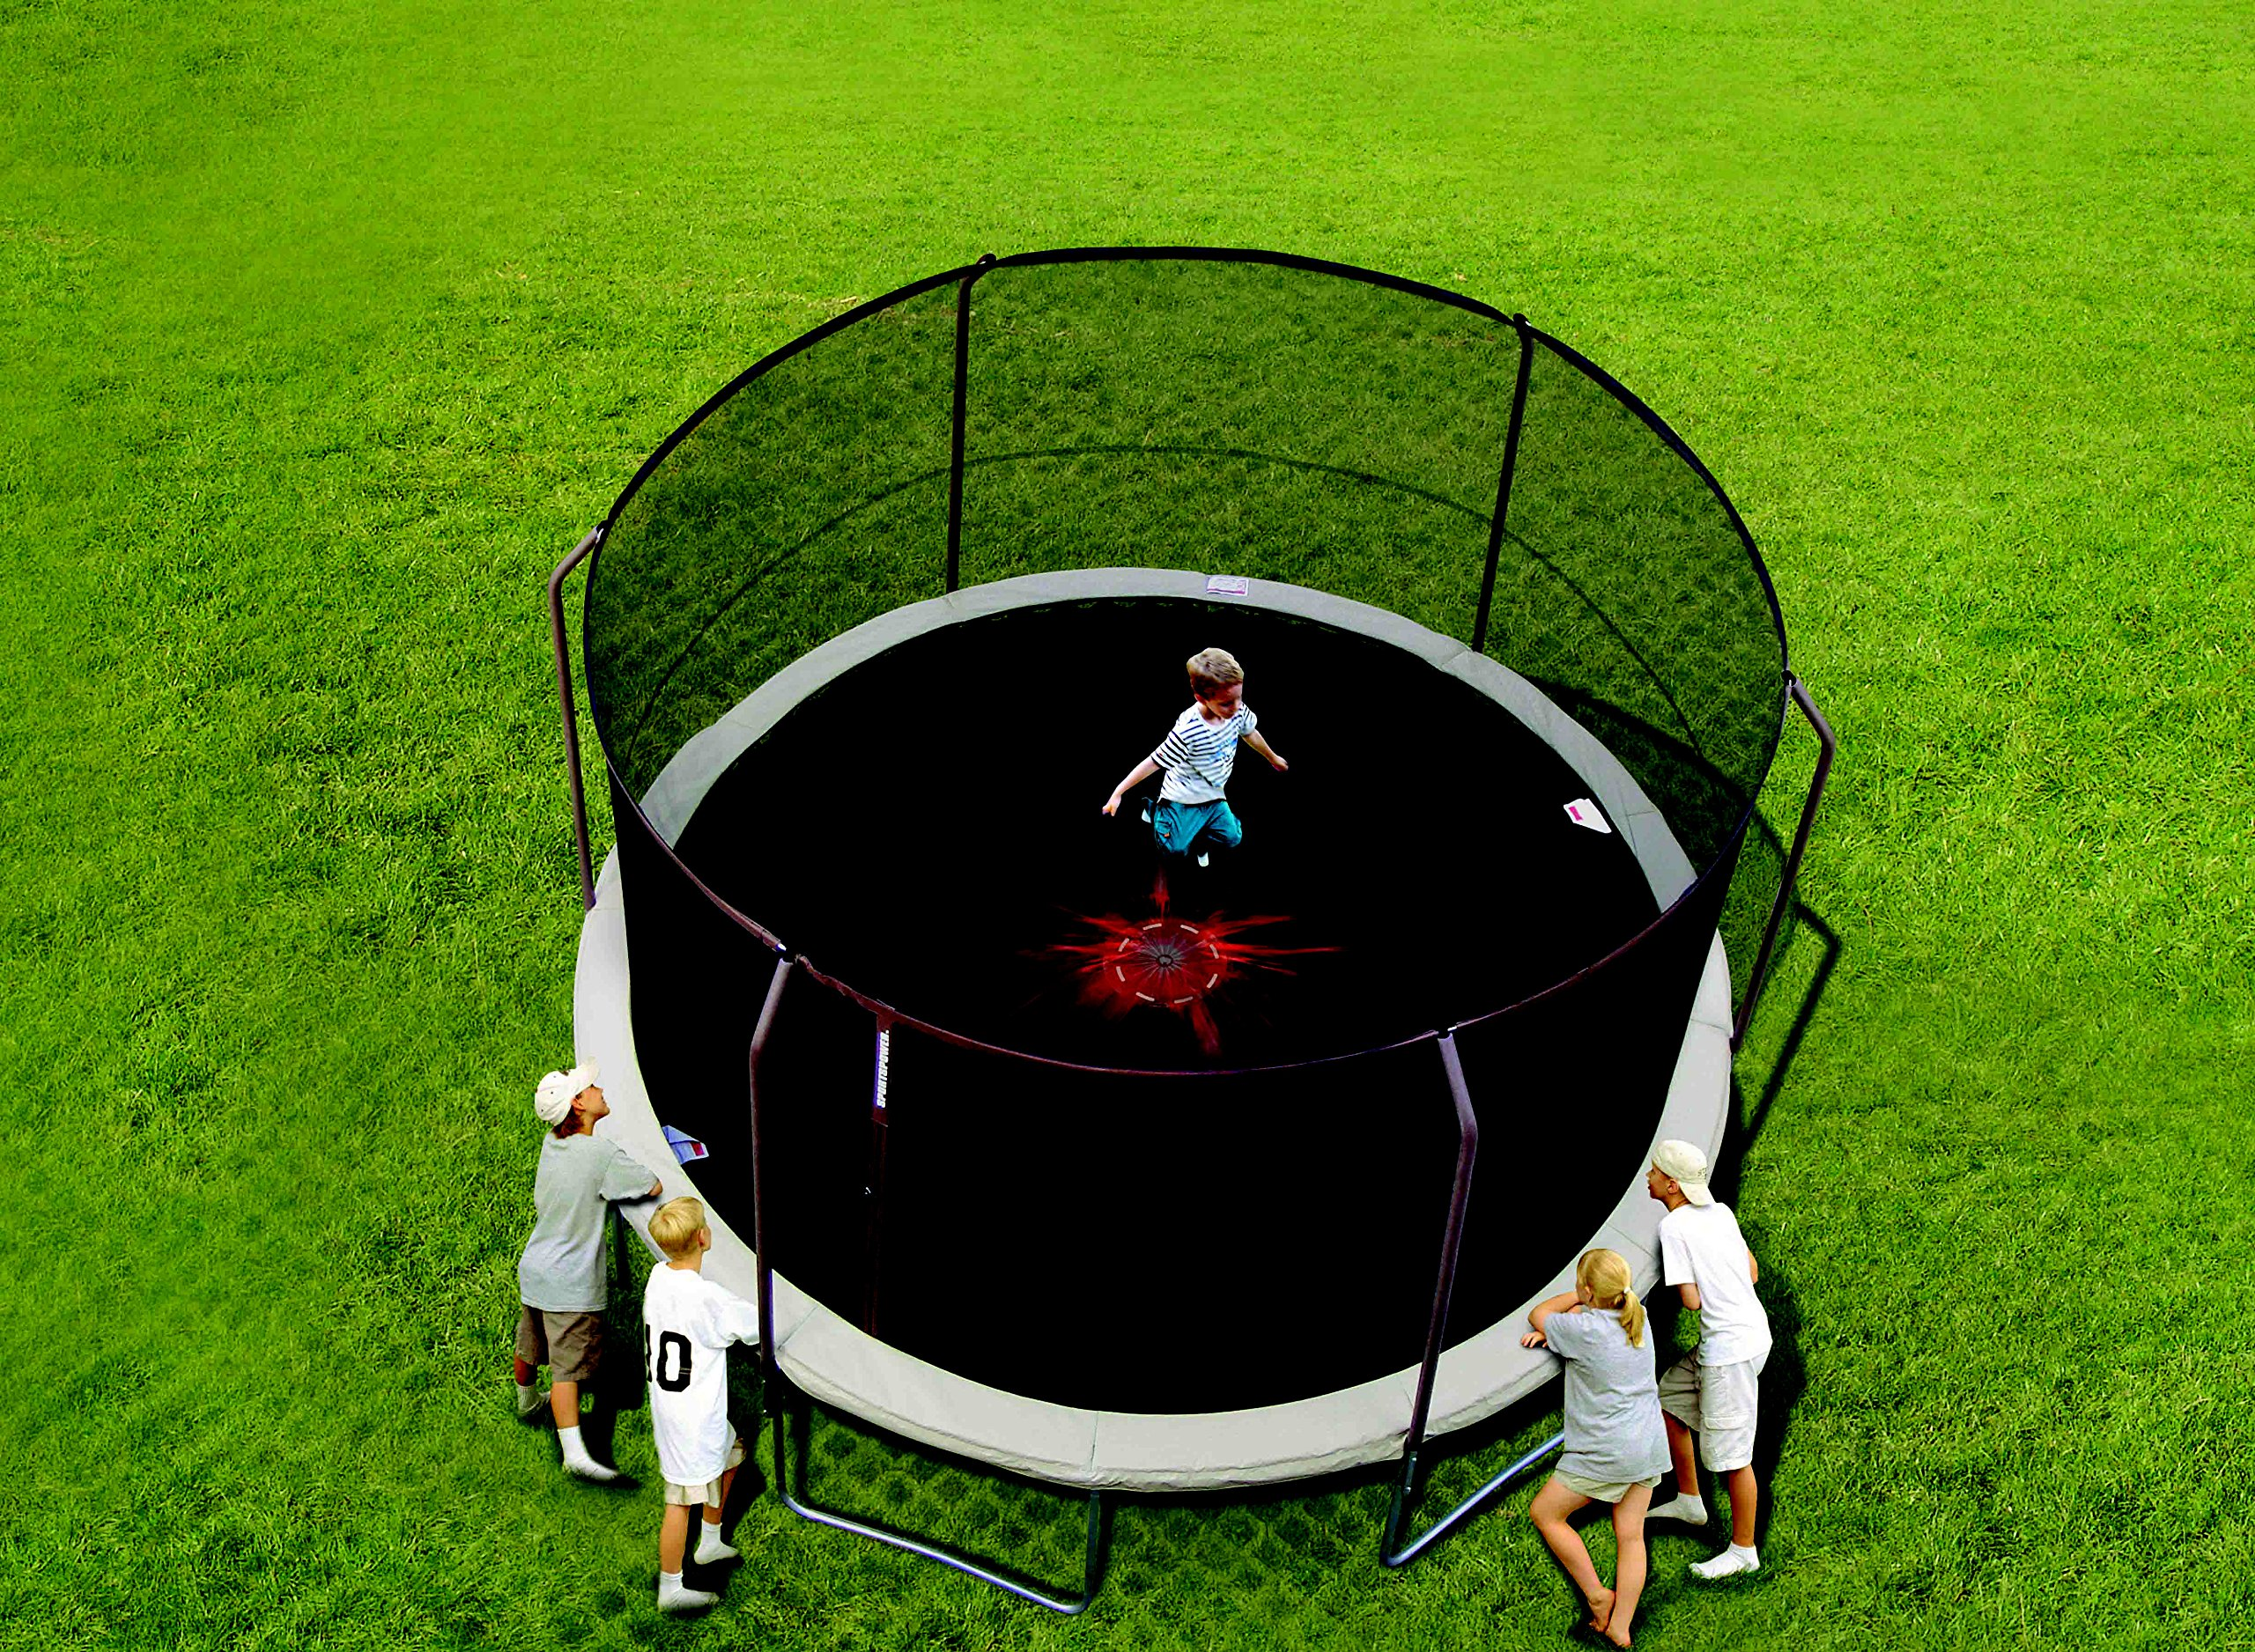 Sportspower Trampoline Enclosure Mesh Net ONLY for 14' Bounce Pro Flex Models- OEM Equipment by Sportspower